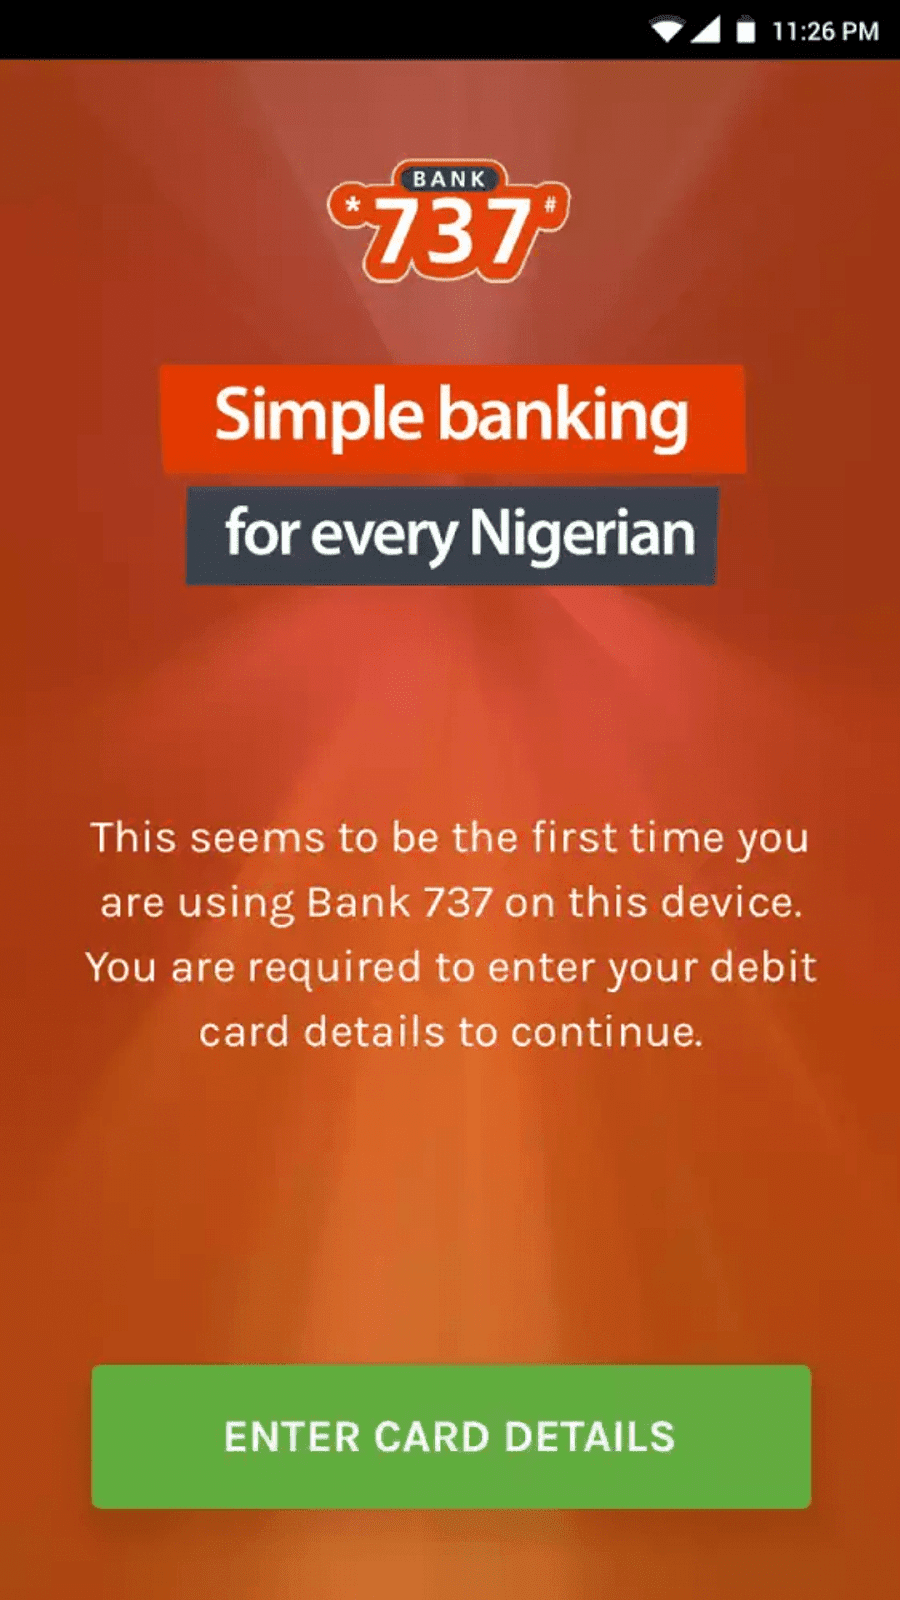 GTBank Introduces Bank 737 Mobile App for Android Users